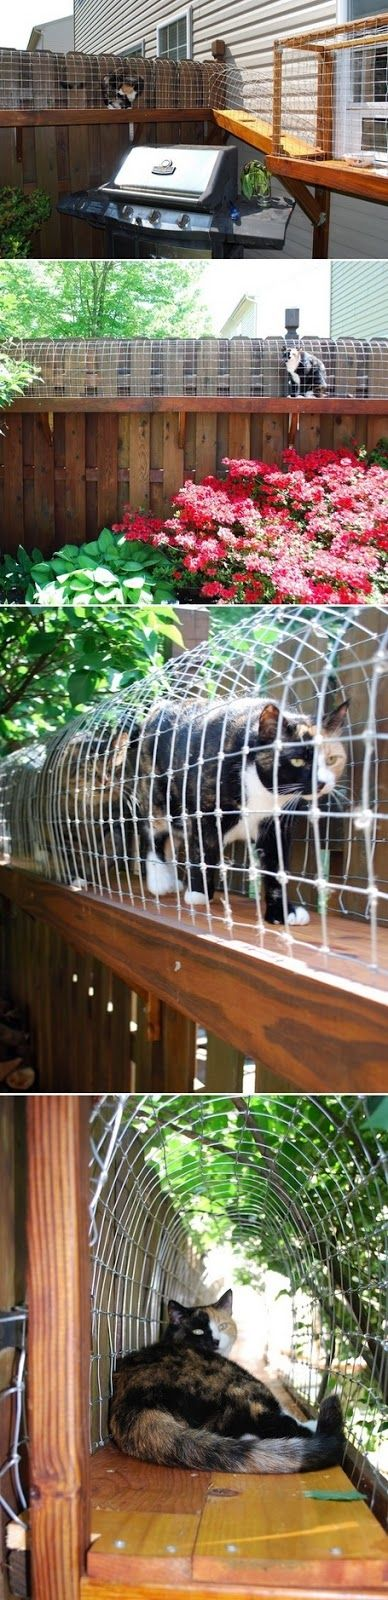 DIY Cat Enclosure for Indoor Cats that Wanna be Outside Cats...HAVE to have this for my cats.